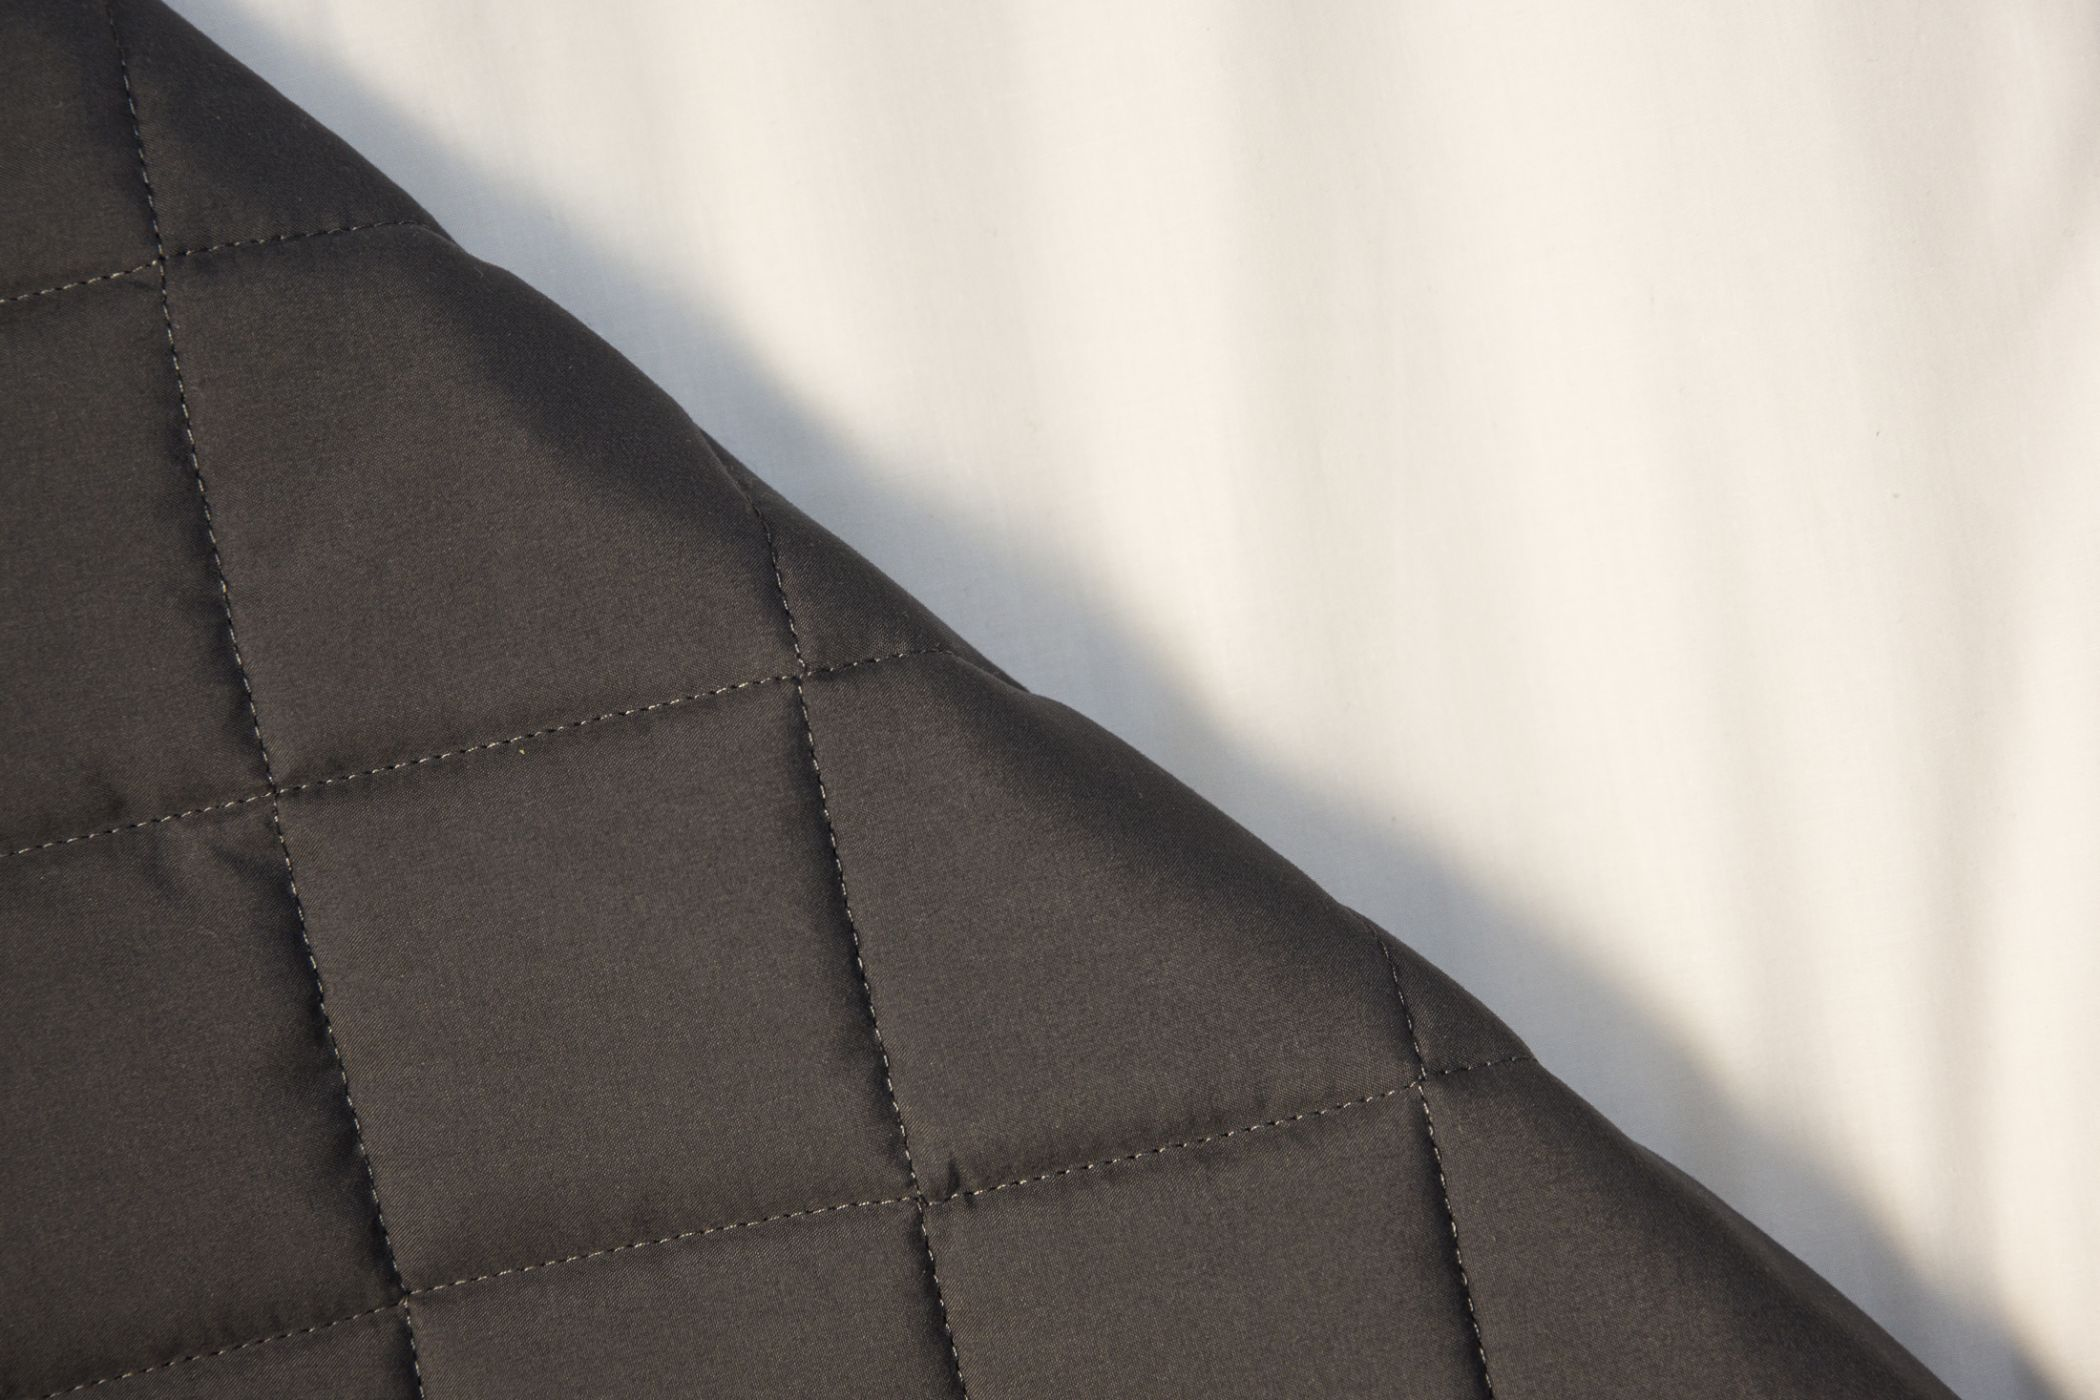 British Airways' new luxuriously soft quilt and bed topper by The White Company